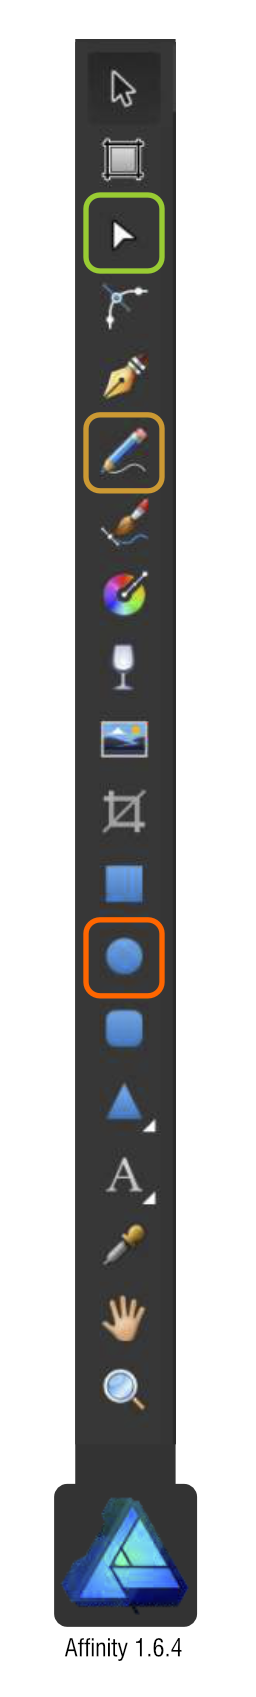 2Dgameartguru inkscape toolbar